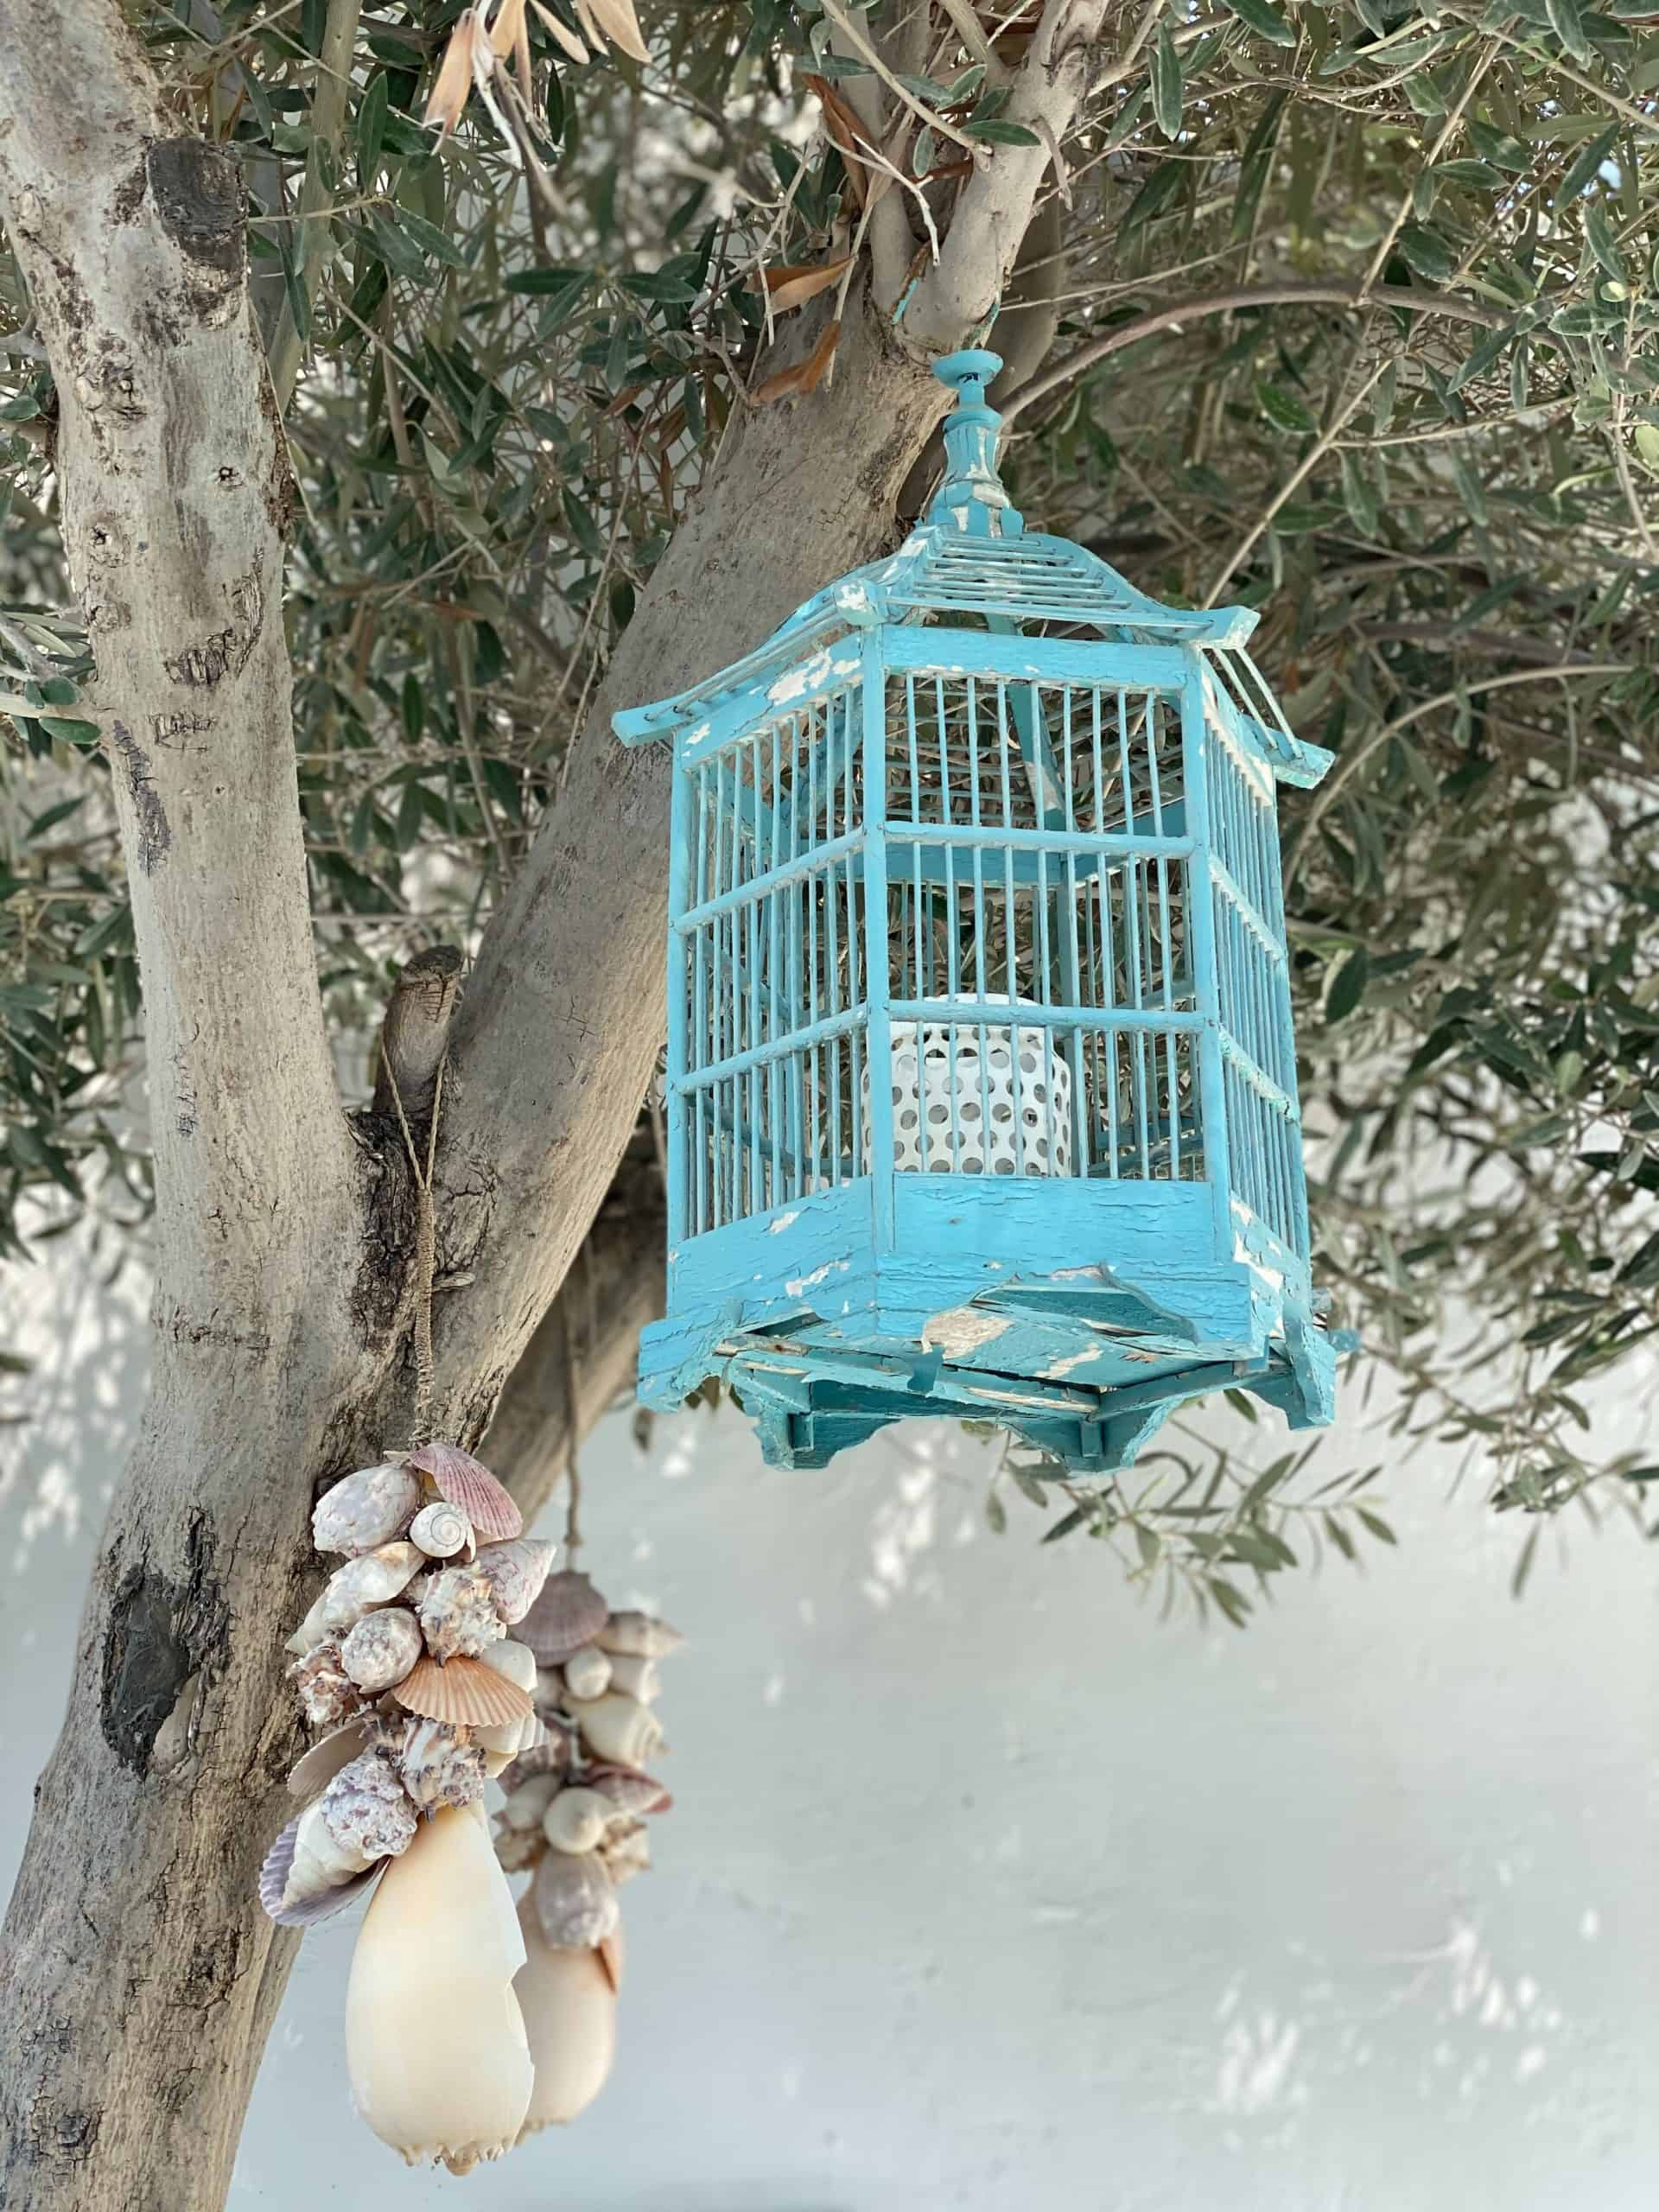 A Birdcage For Your Bird: Designing Your Own